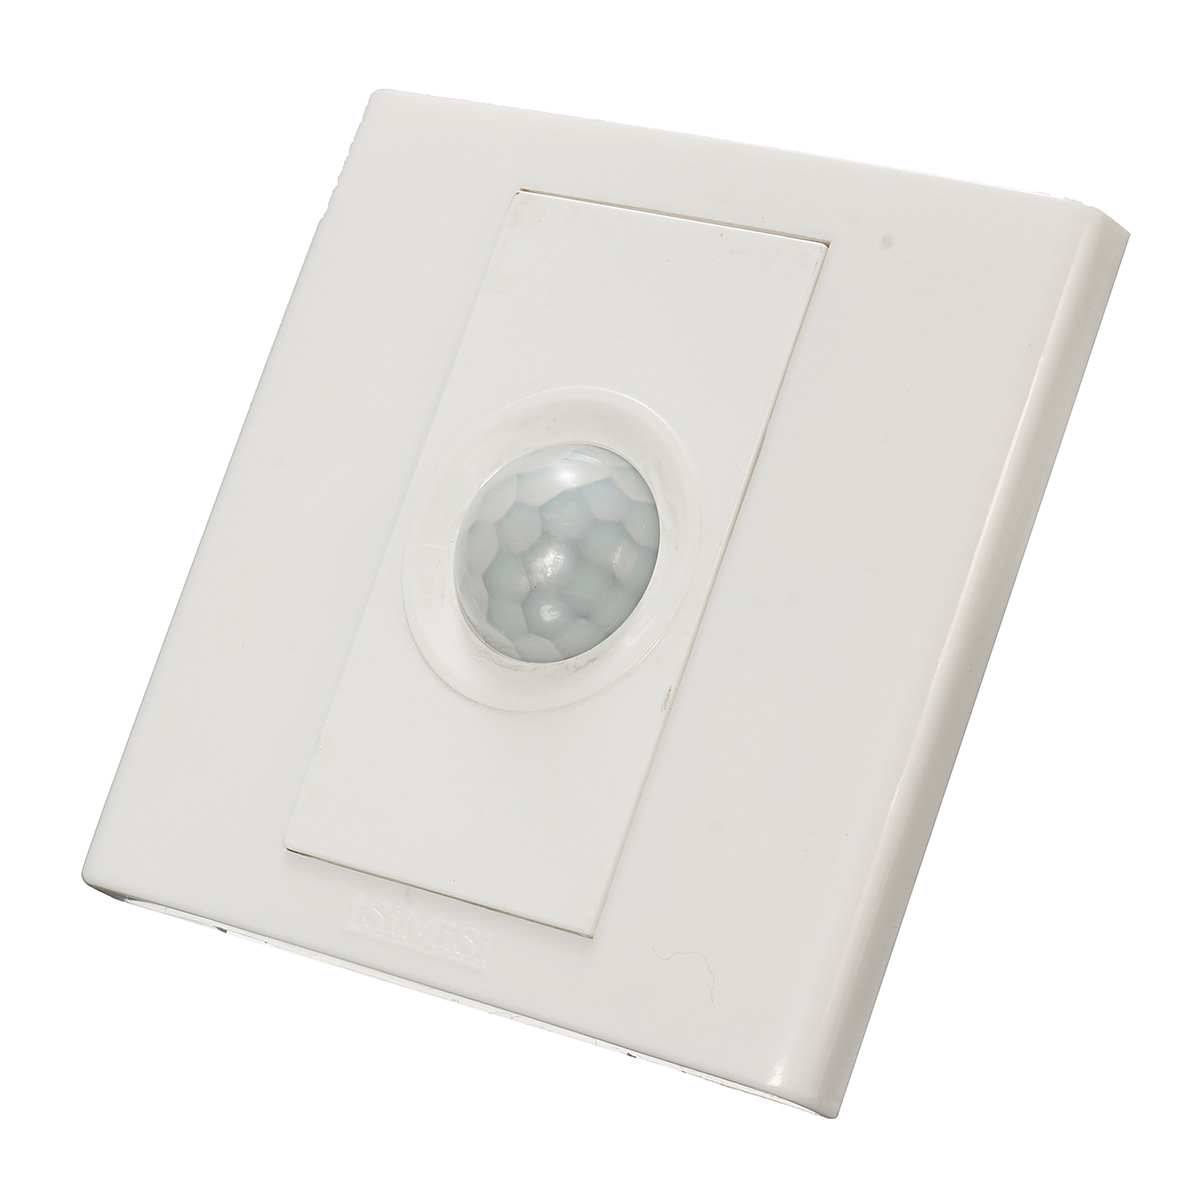 220v wall plate infrared pir motion sensor security sound